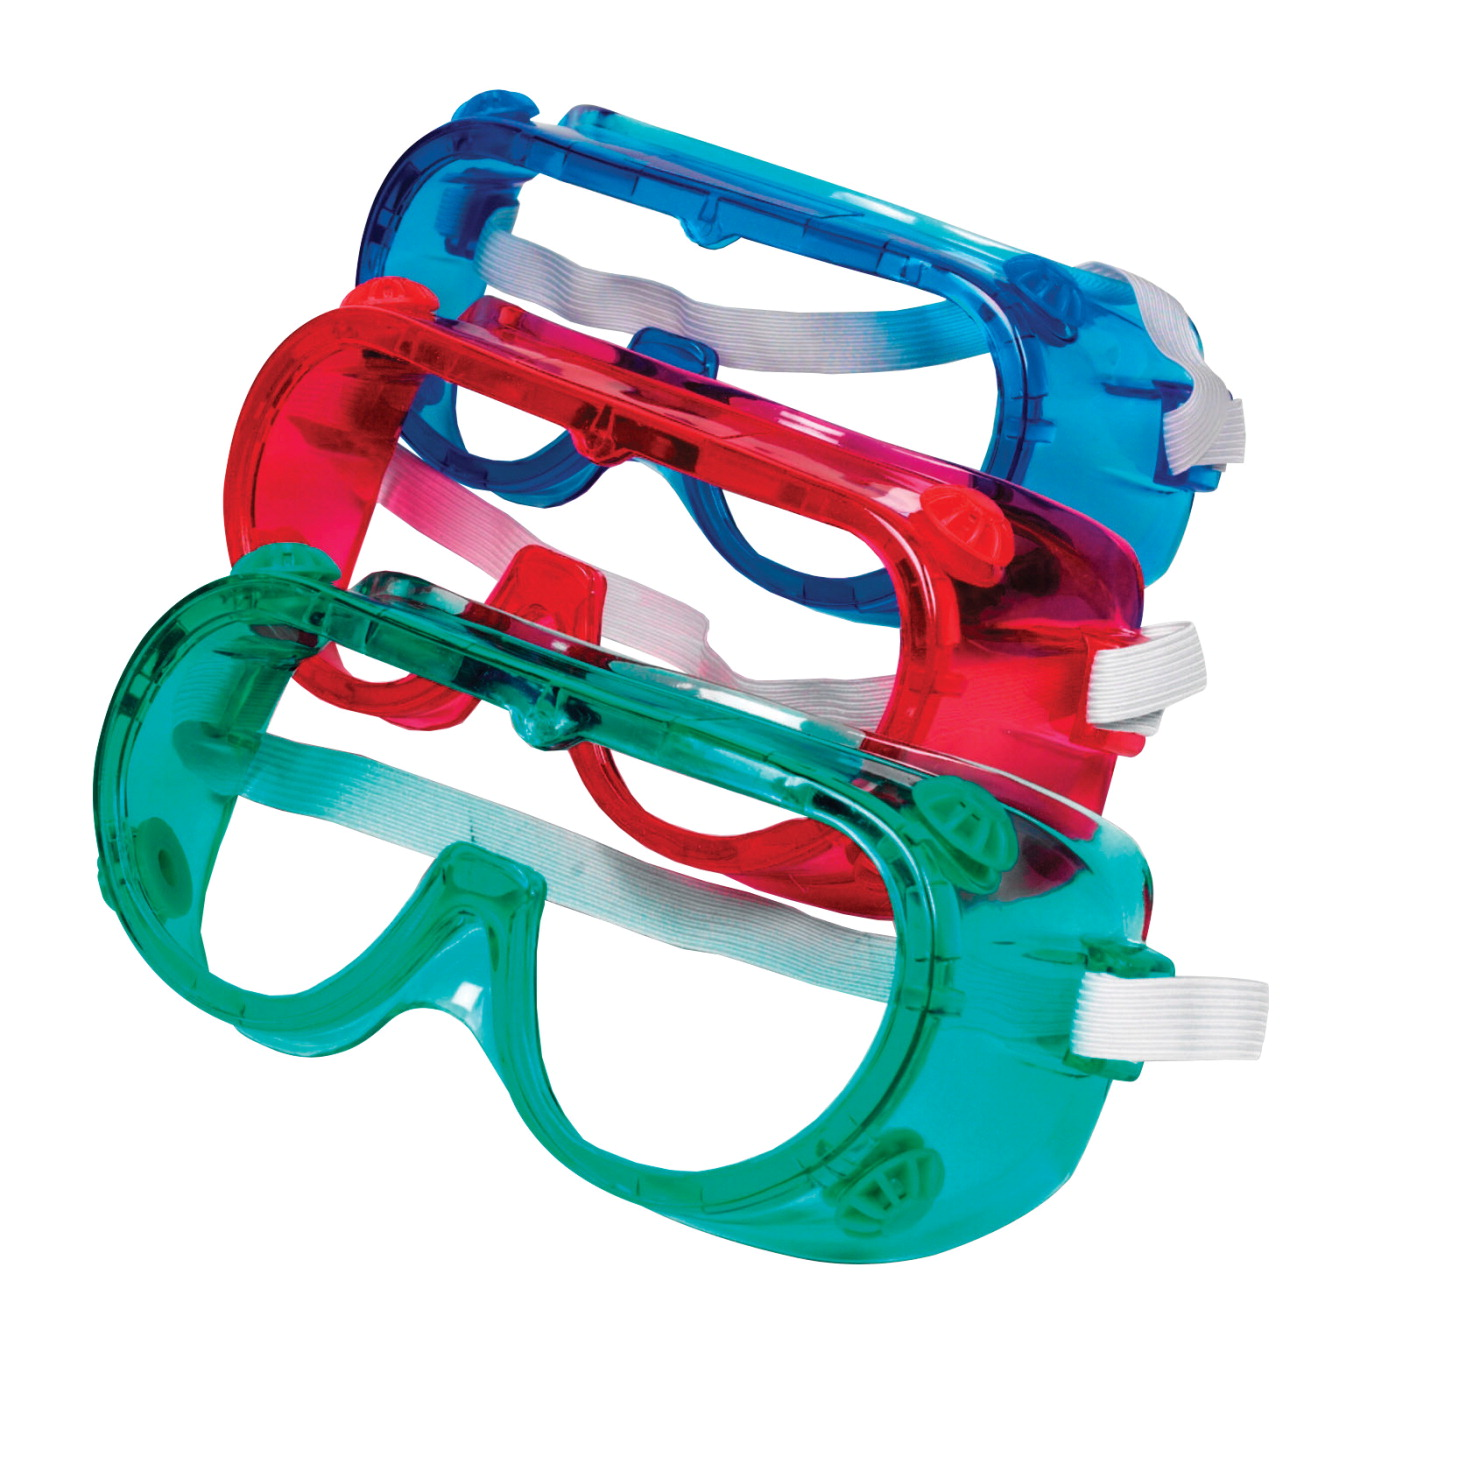 Learning Resources Colored Safety Goggles, Assorted Colors, Set of 6